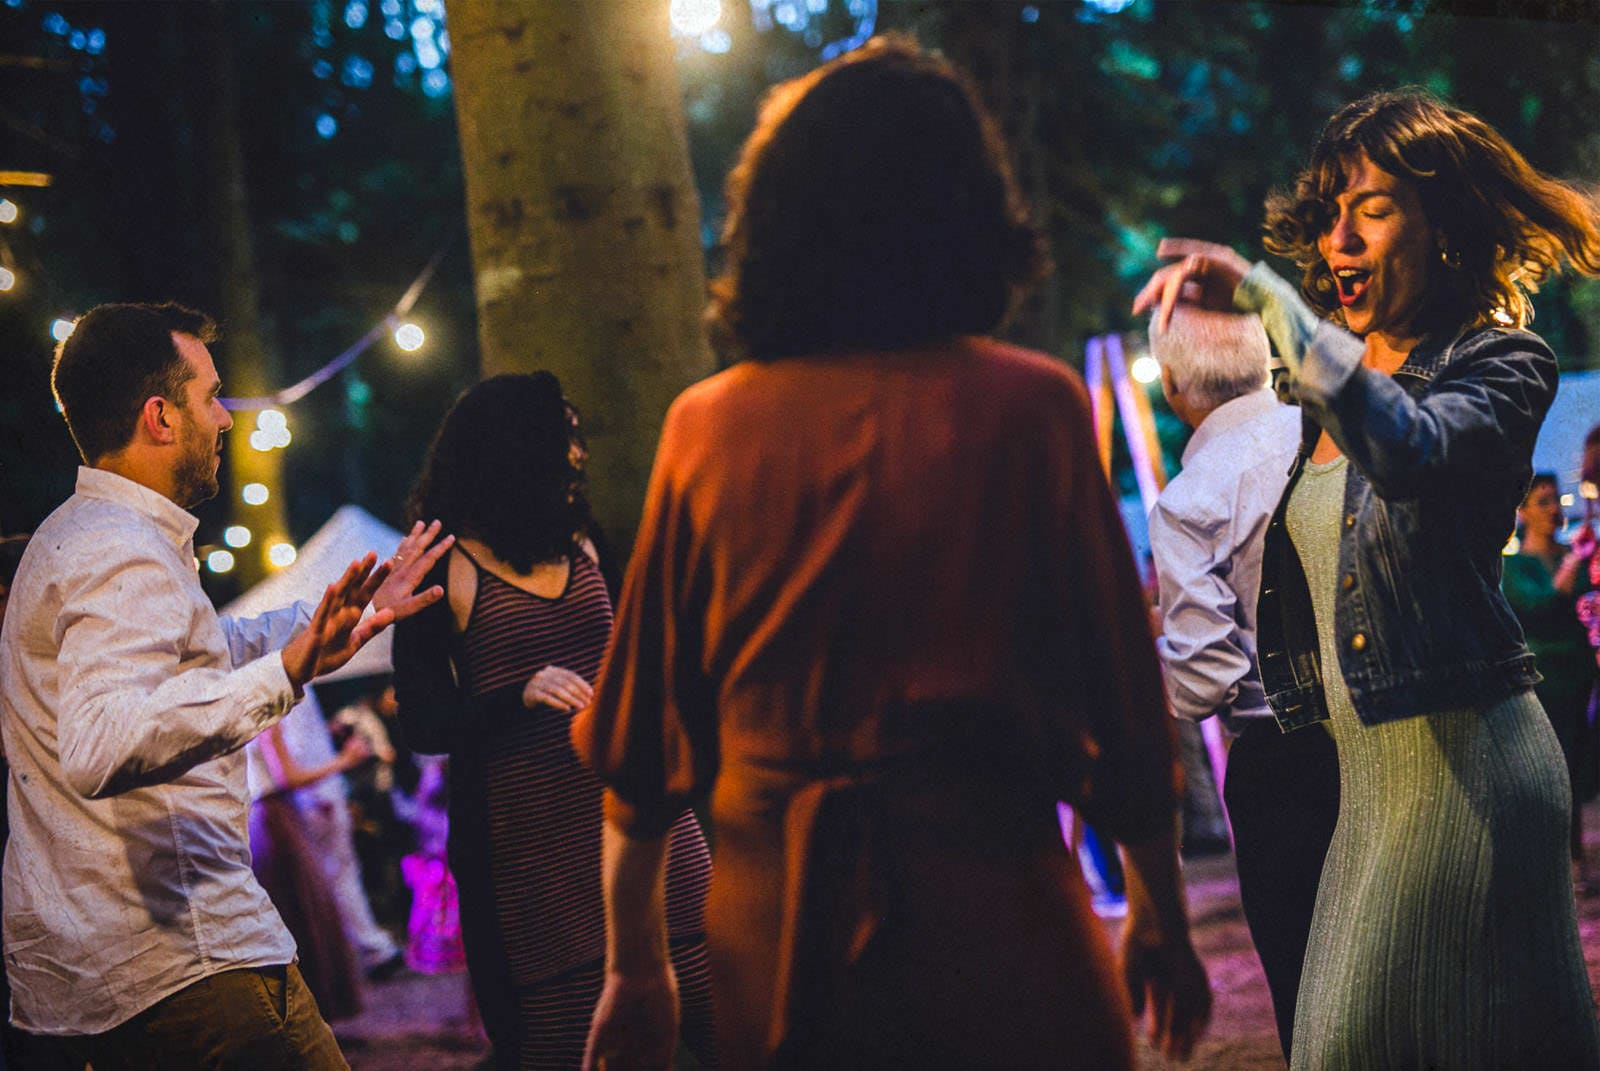 people dancing in the forrest